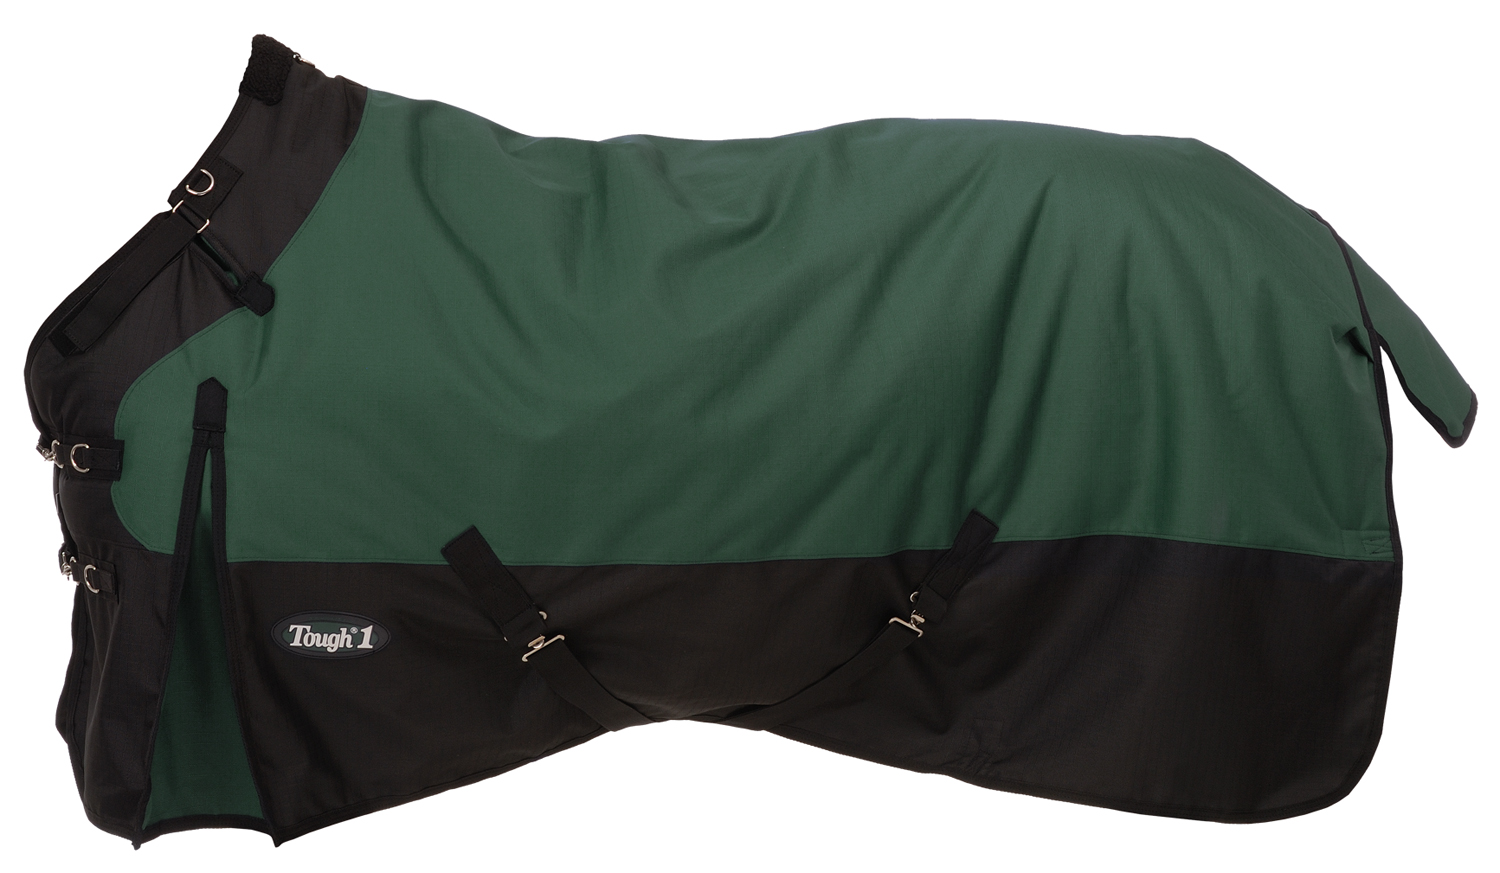 Tough1 1200D  300Gram Waterproof Snuggit Turnout Blanket